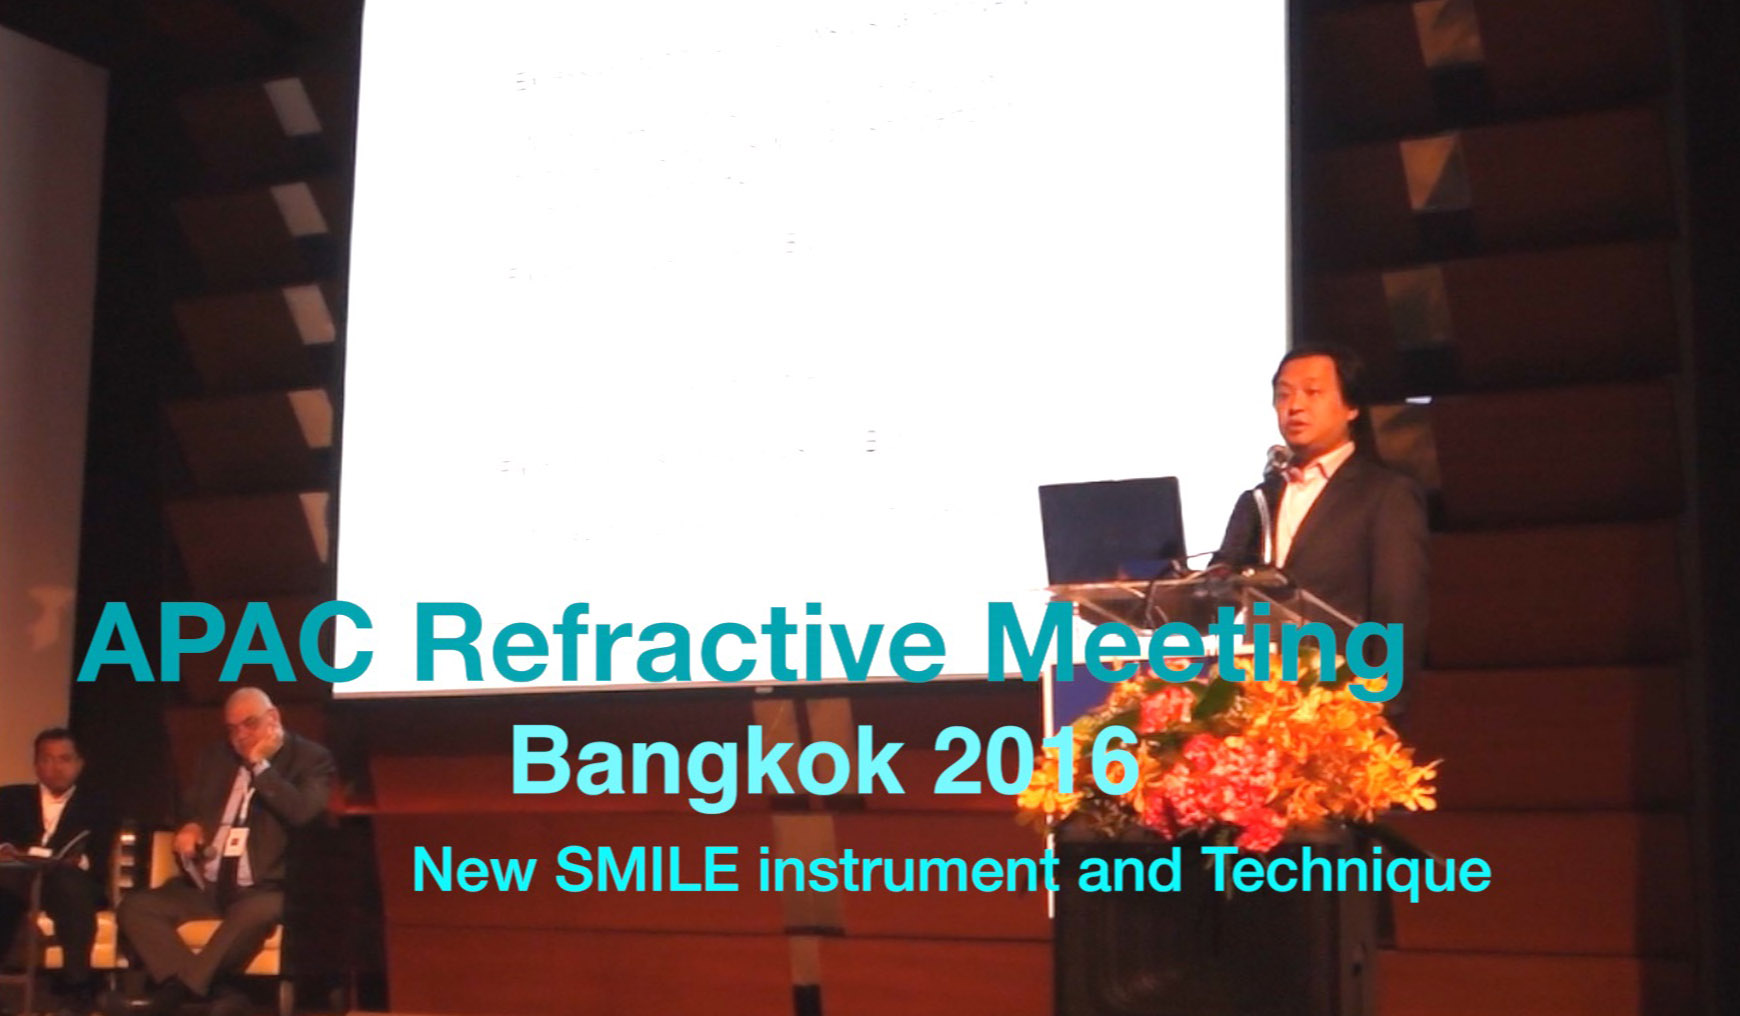 2016 APAC Refractive meeting - introducing a SMILE technique to the world